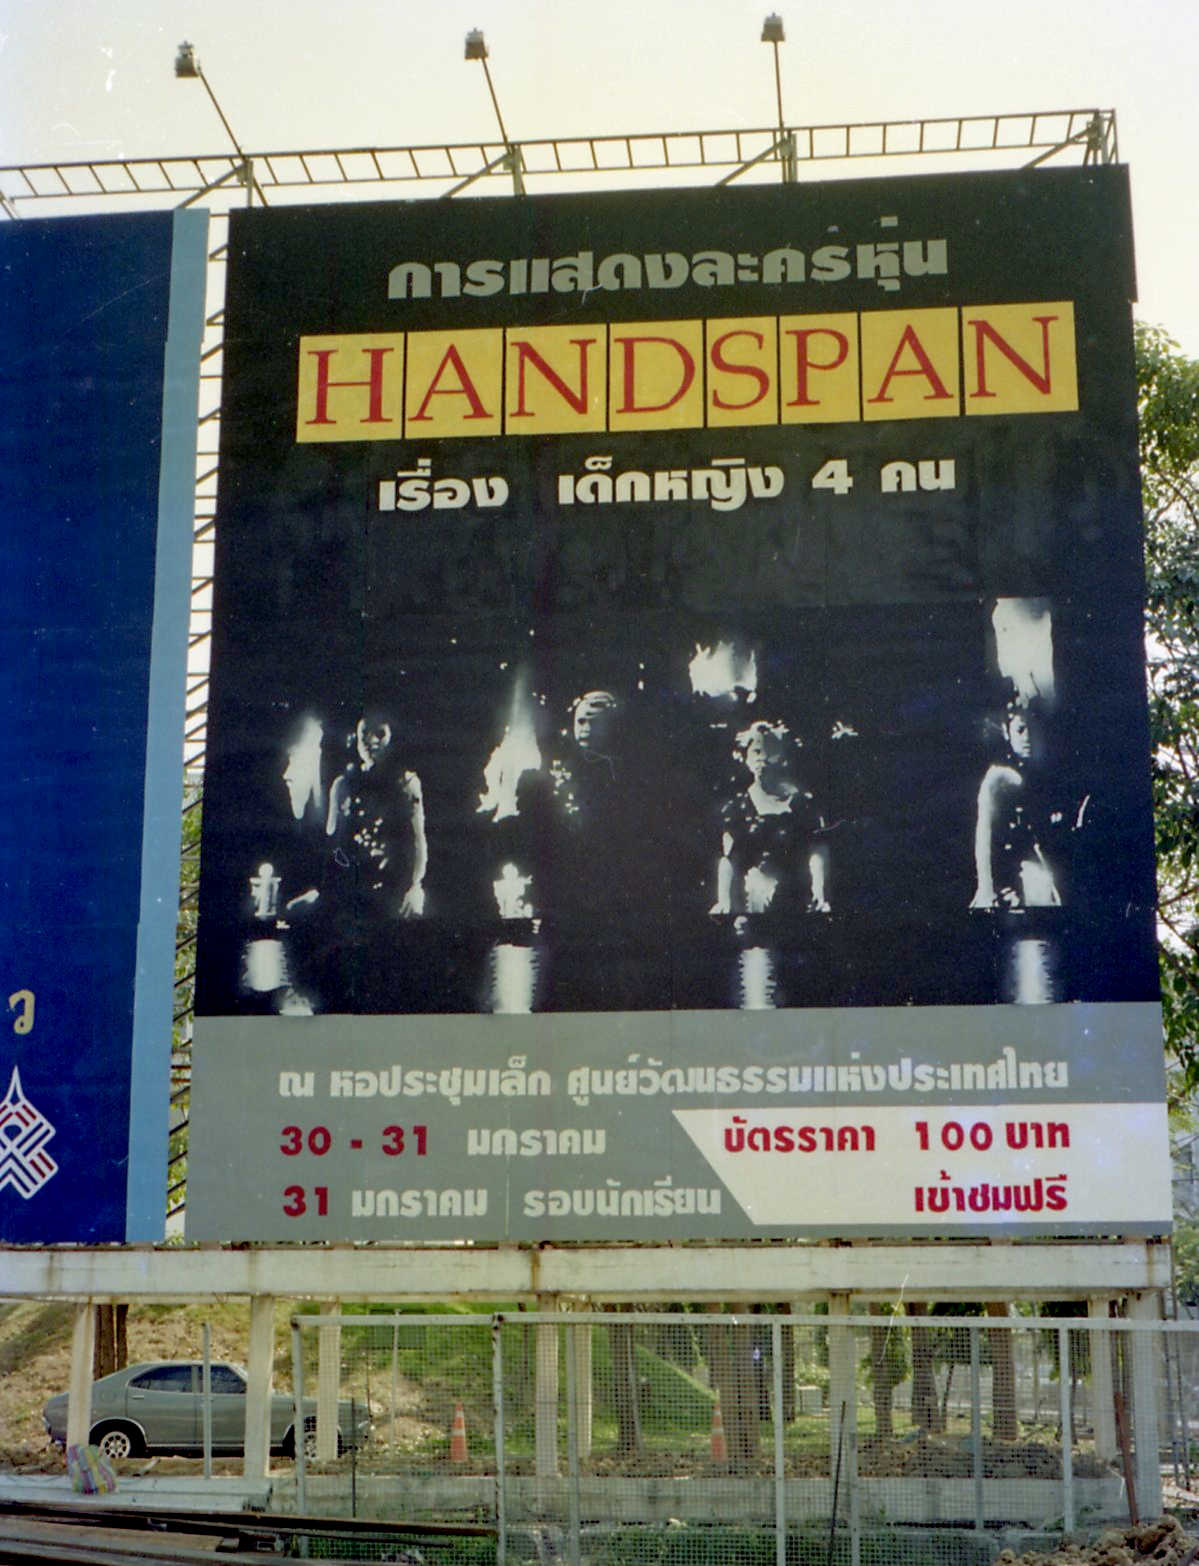 Handspan Theatre Four Little Girls Bangkok billboard with pictures of 4 little girls in performance